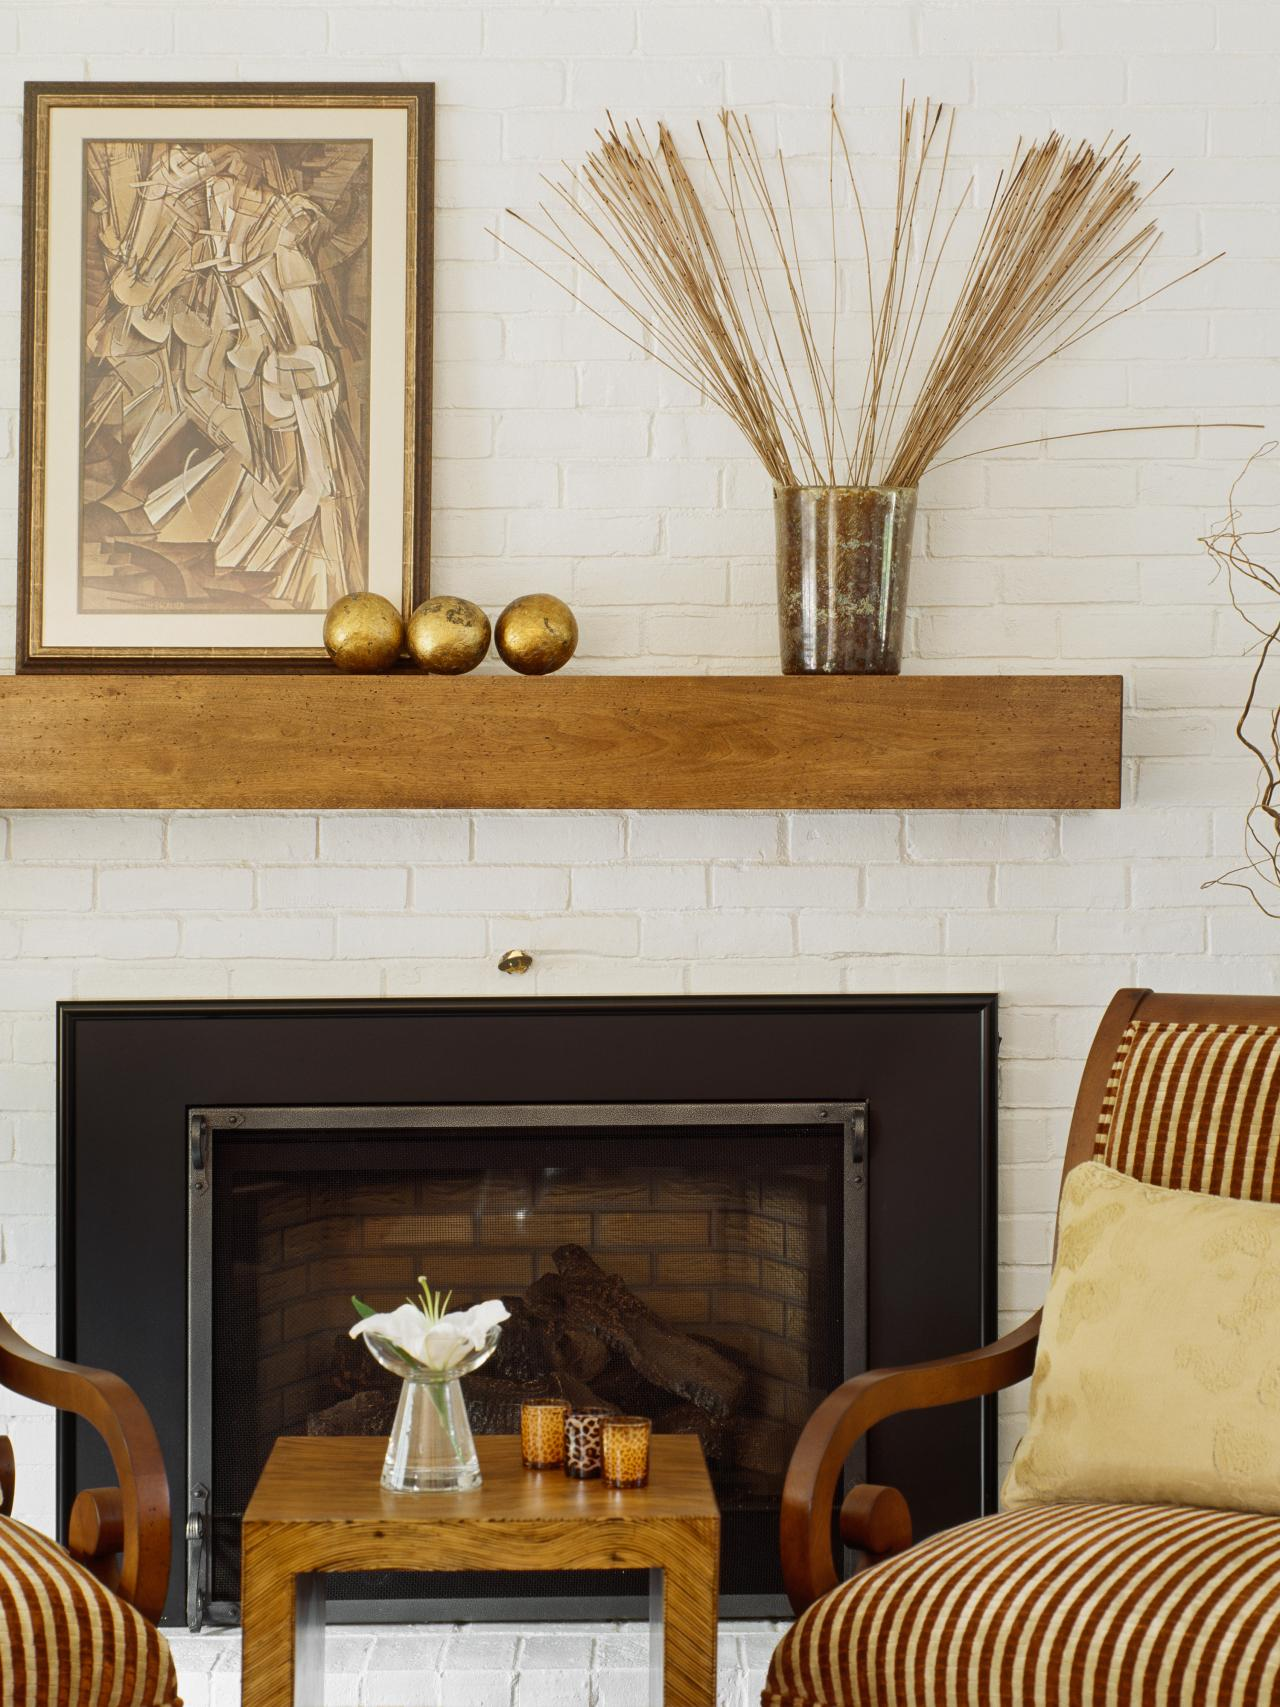 The design experts at HGTV.com share their tips on how to decorate your fireplace and mantel this summer.